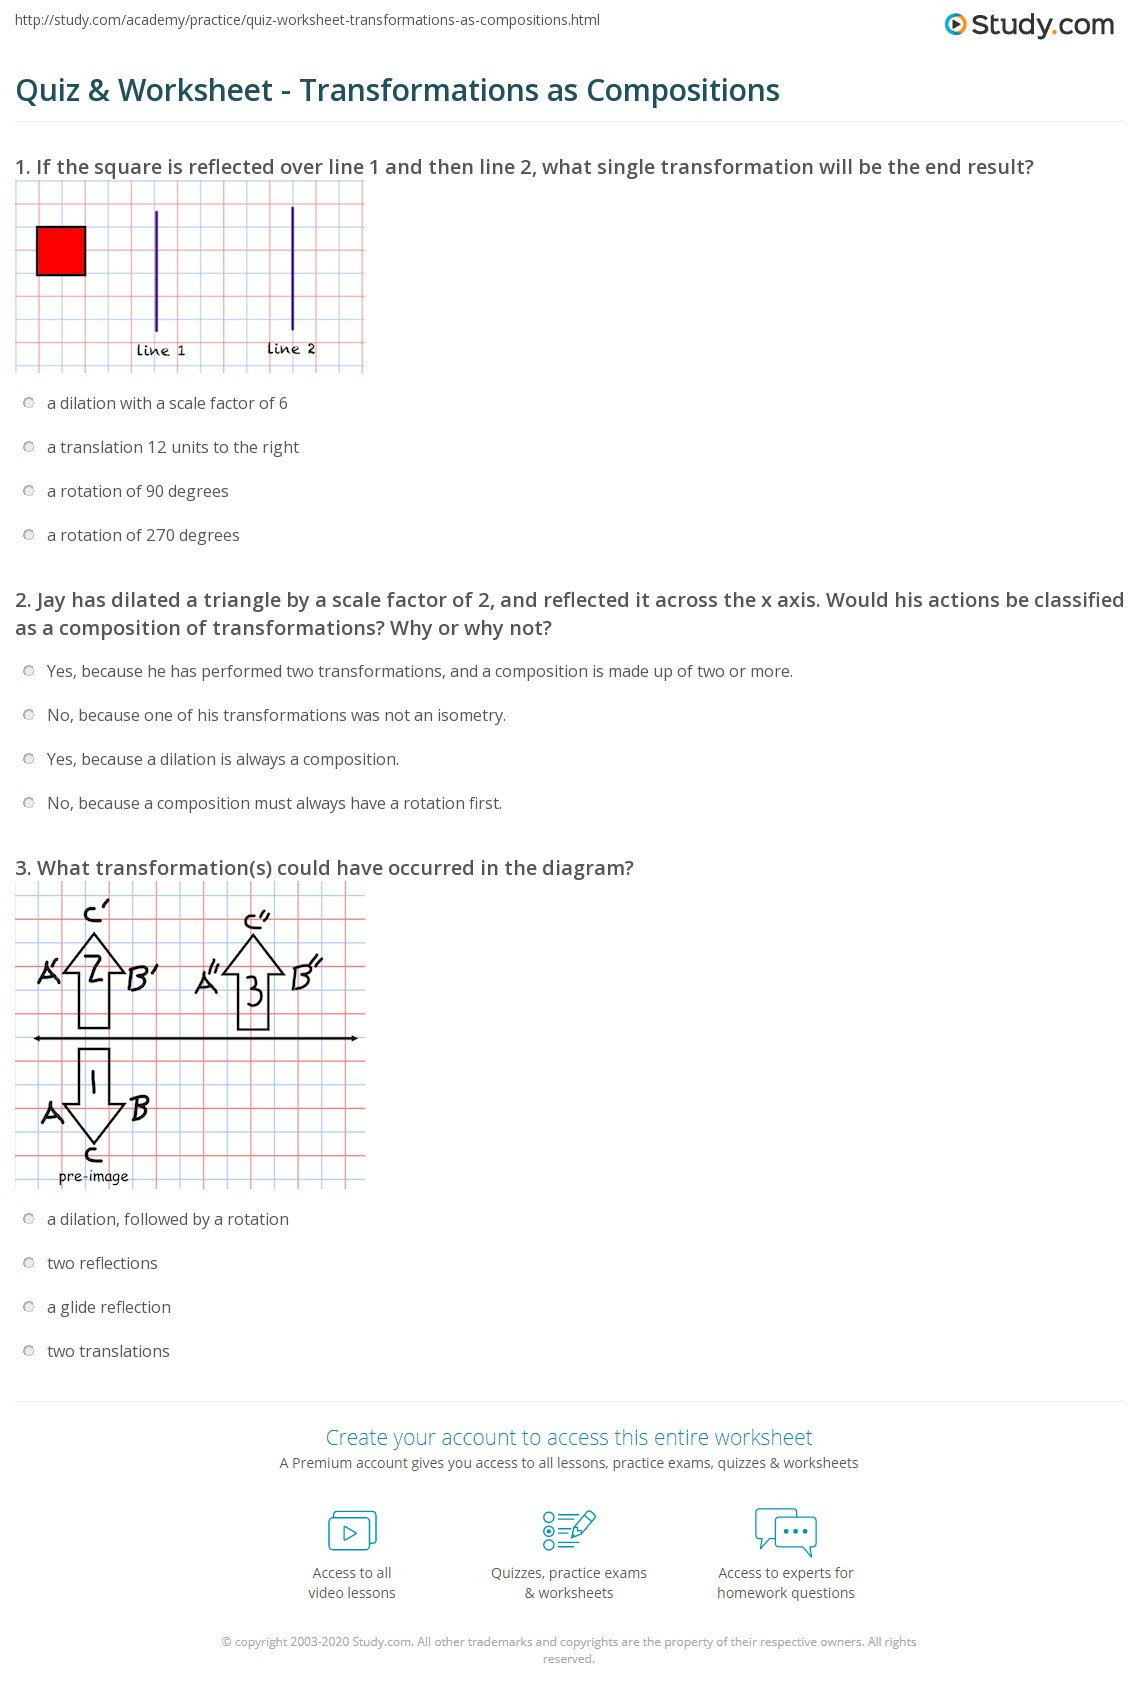 Geometry Transformation Composition Worksheet Answers Quiz & Worksheet Transformations as Positions